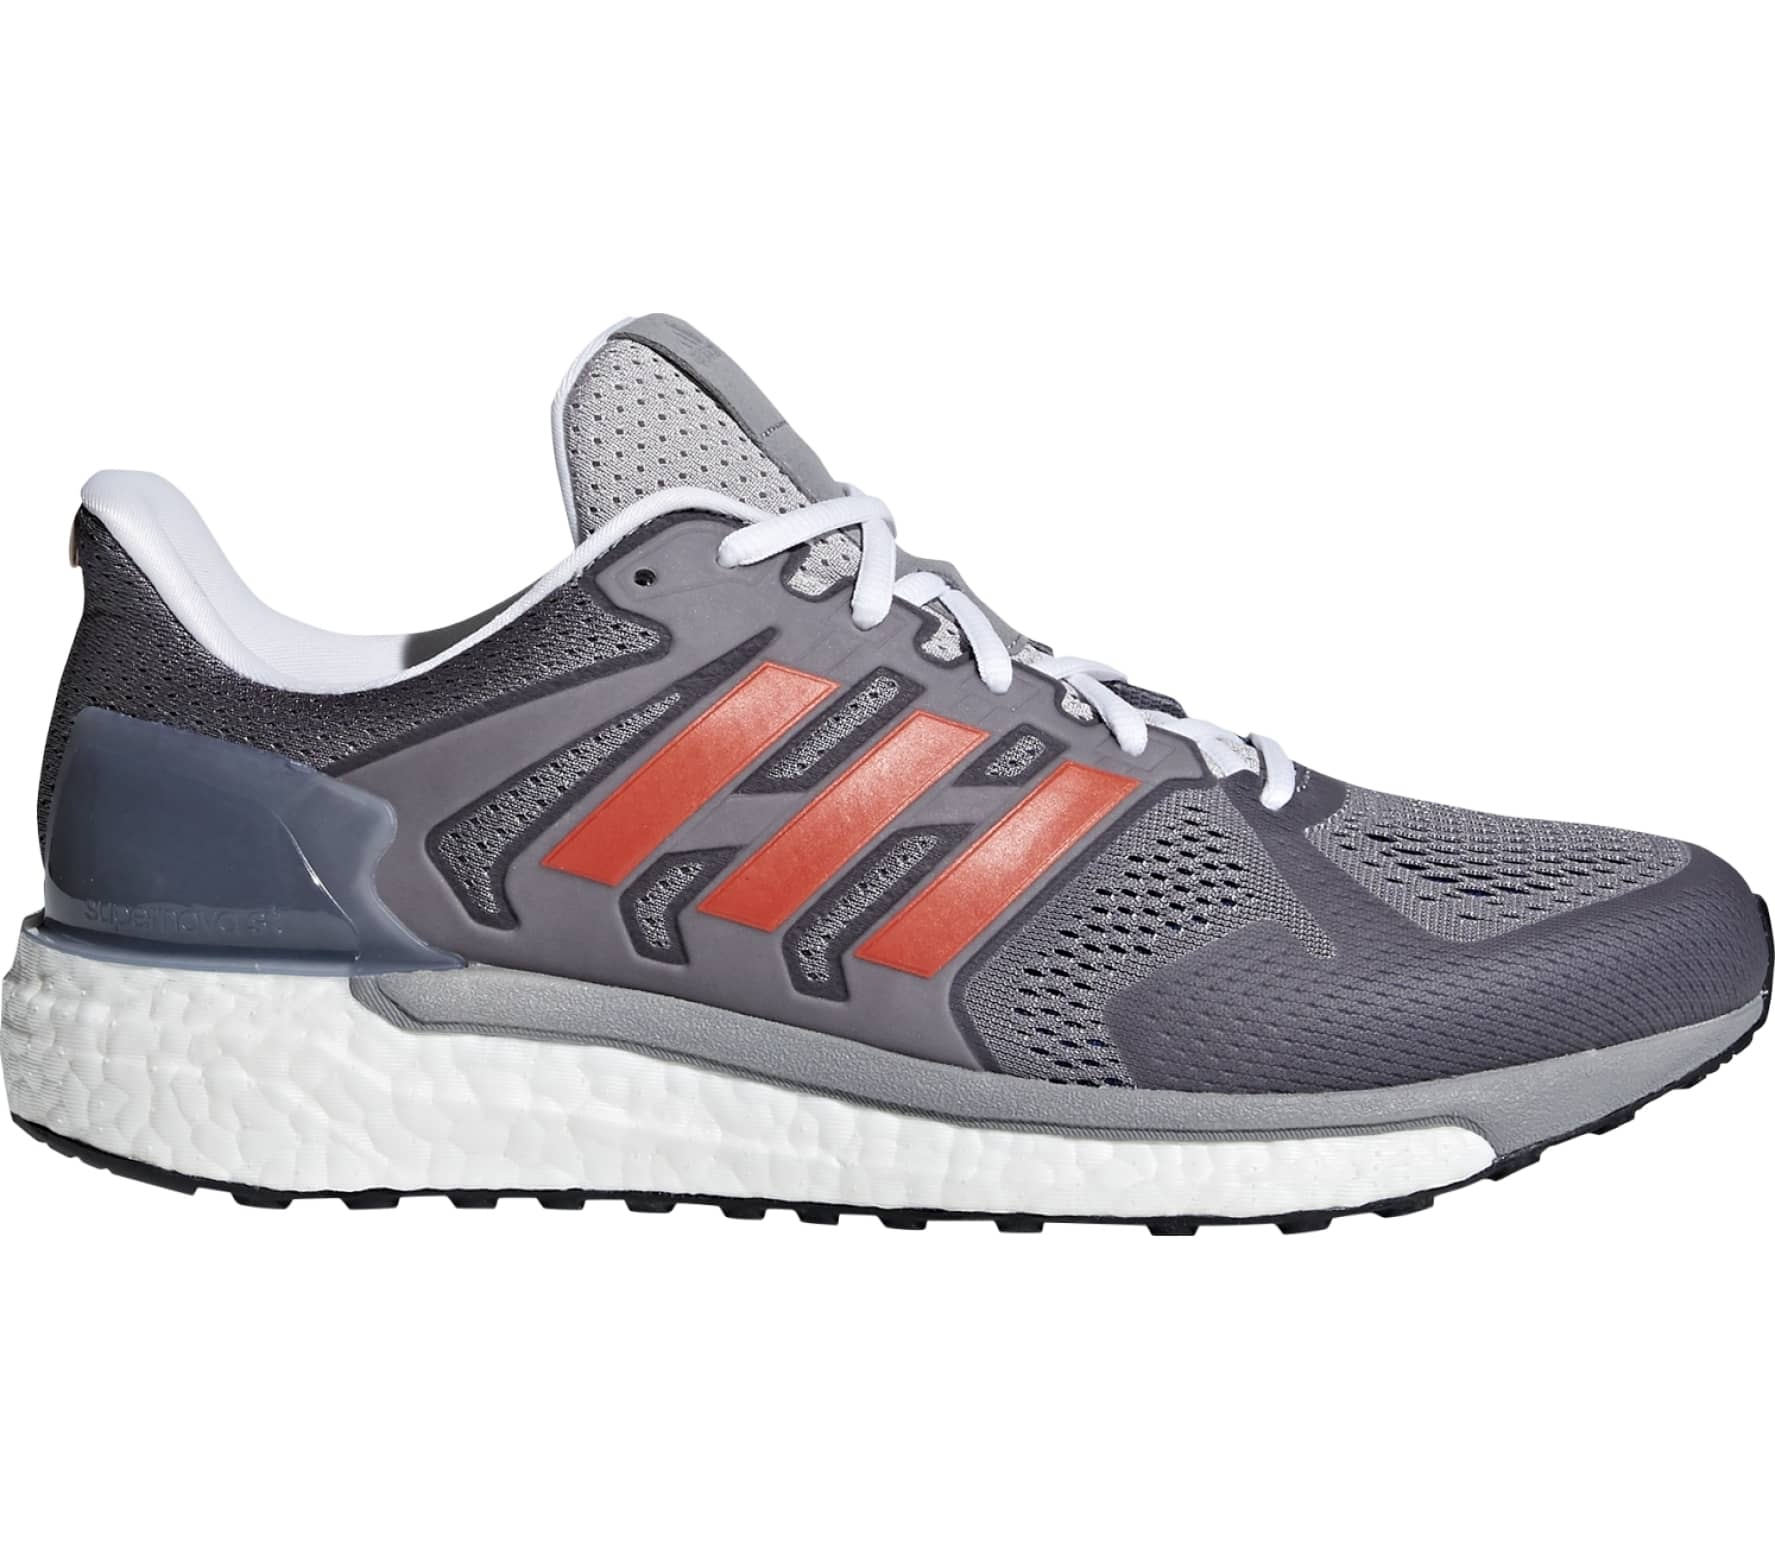 d726e8f53 Adidas - Supernova ST Aktiv men s running shoes (grey red) - buy it ...